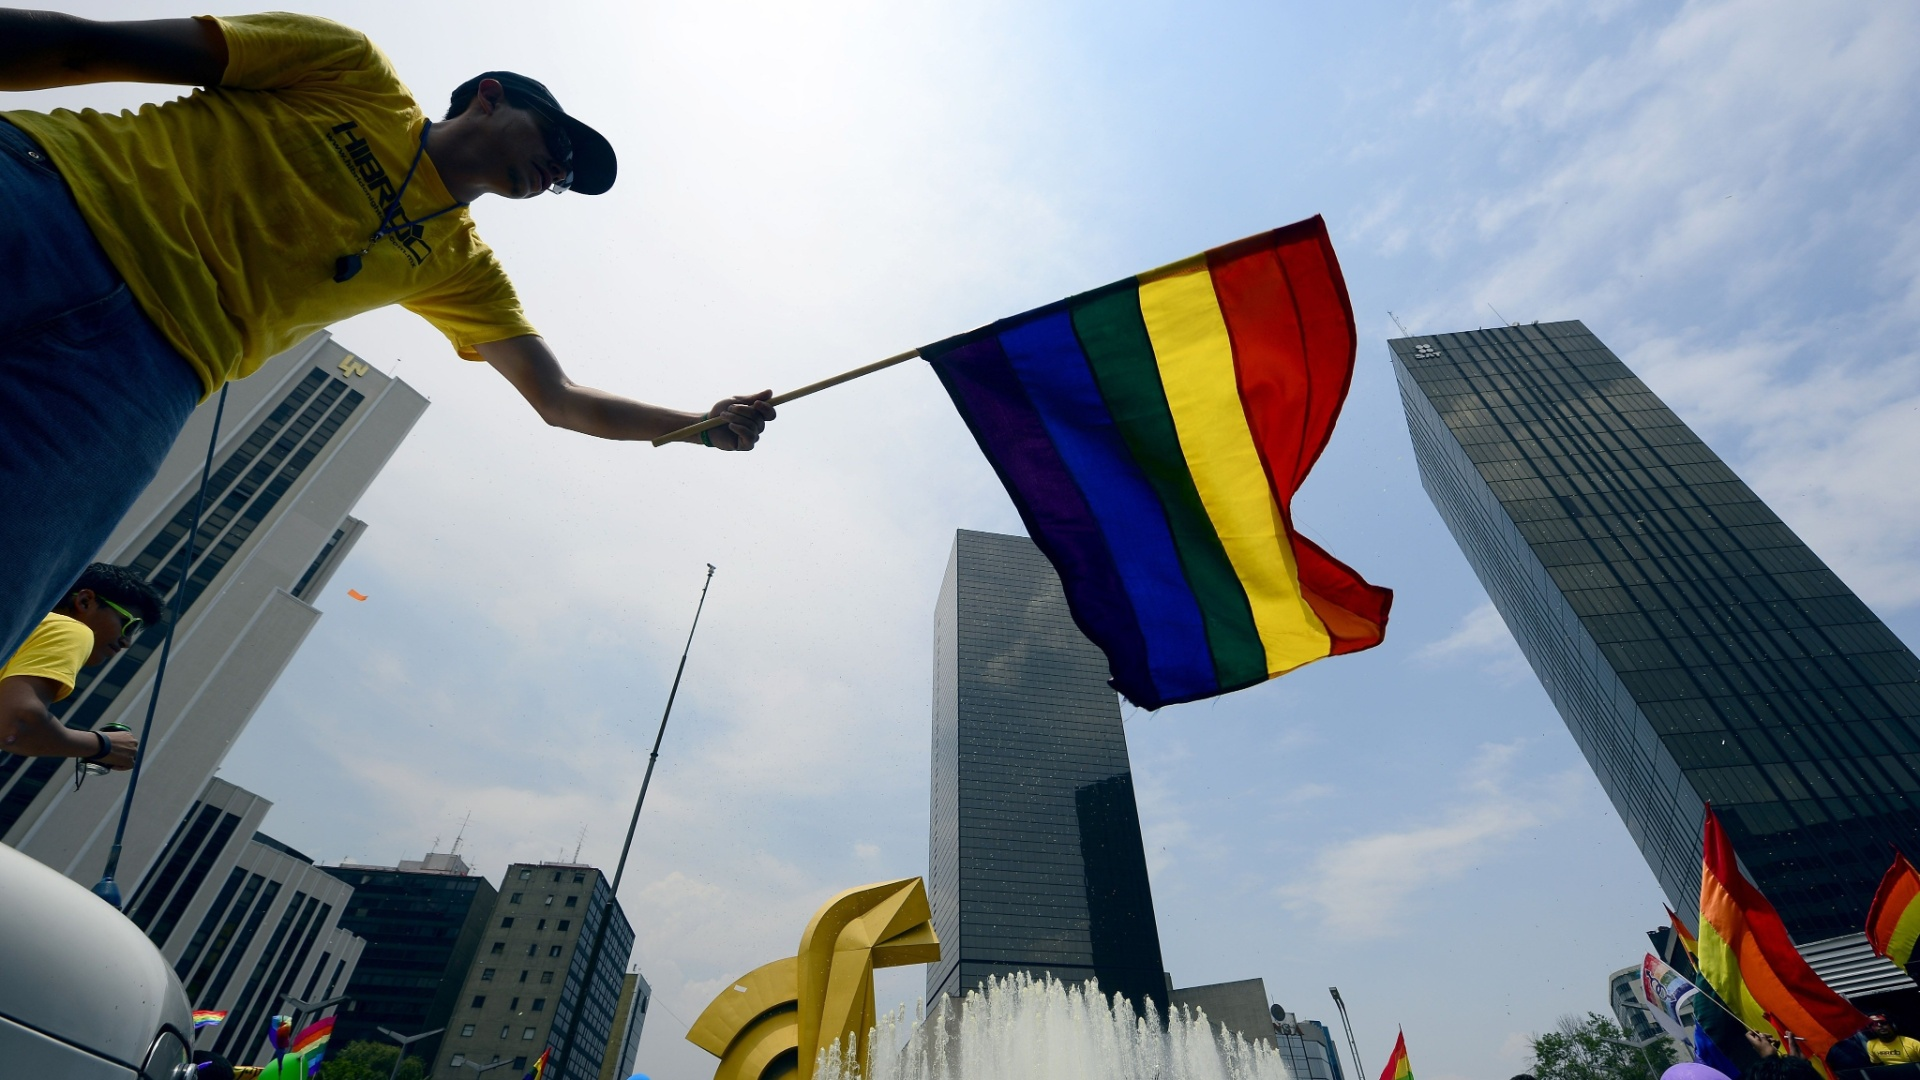 2.jun.2012 - Homem segura bandeira smbolo do movimento gay no mundo, durante parada do orgulho GLBT na Cidade do Mxico 